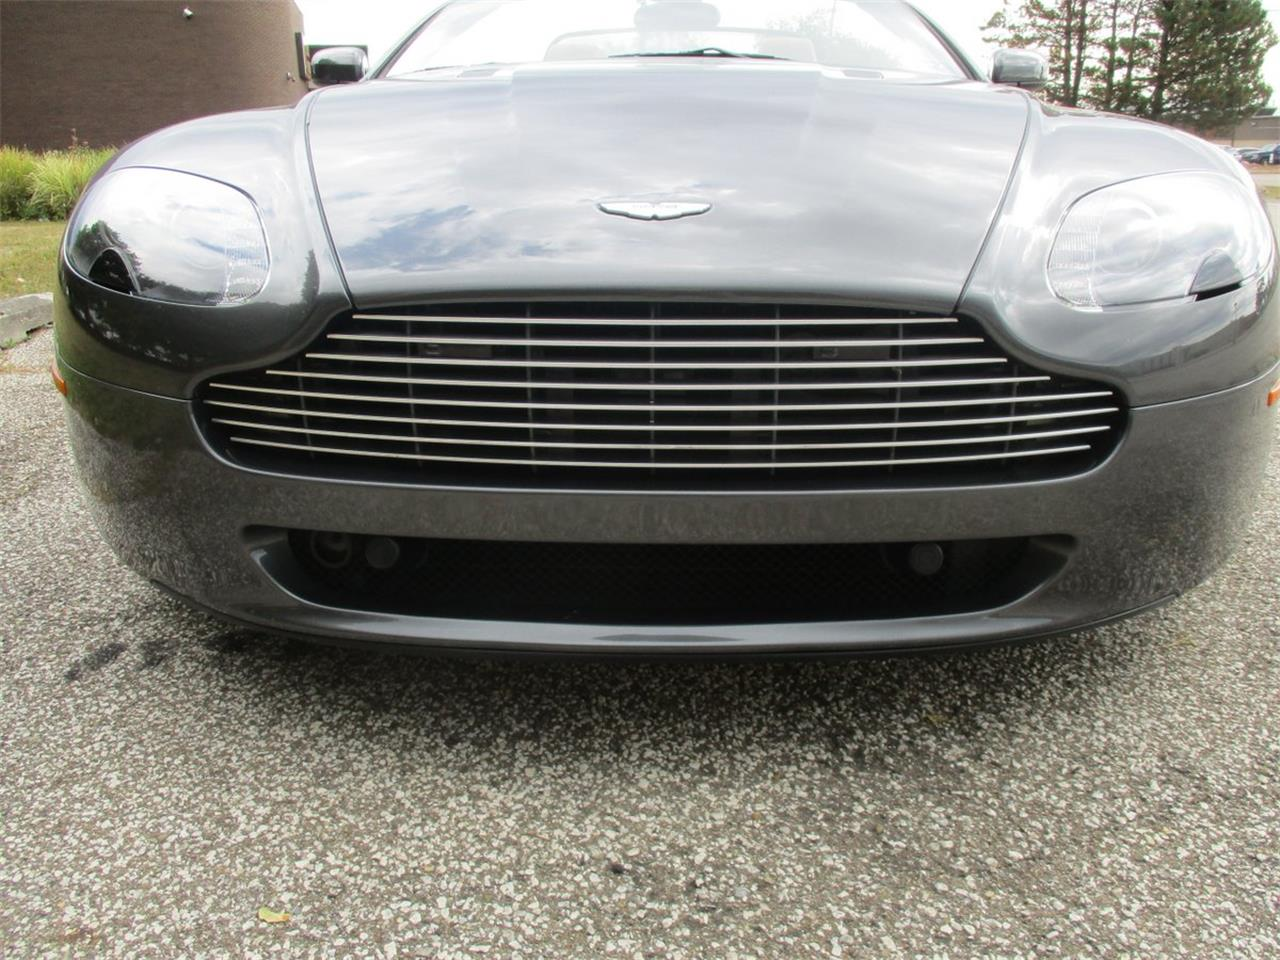 Large Picture of '09 V8 Vantage Roadster - $49,500.00 - M5PD